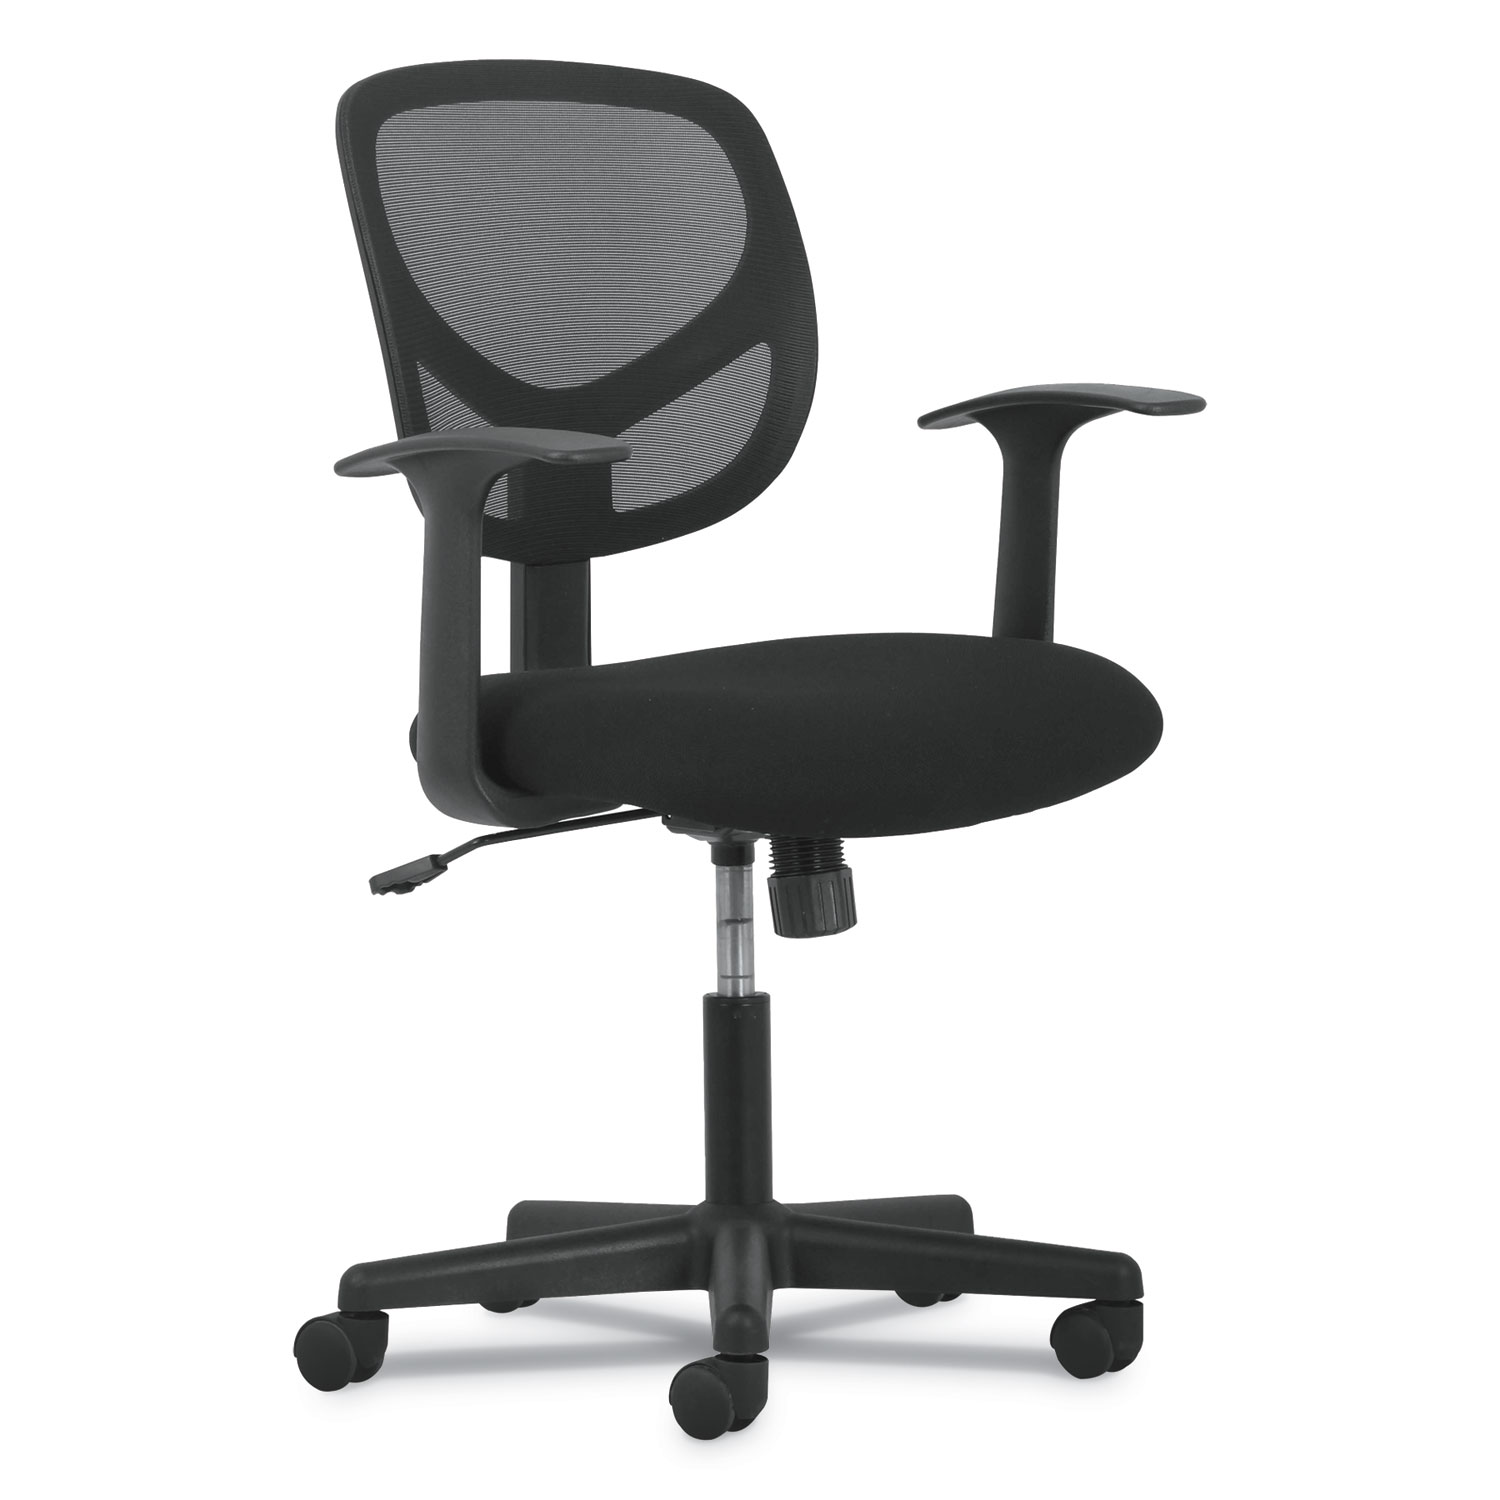 Admirable 1 Oh Two Mid Back Task Chairs Supports Up To 250 Lbs Dailytribune Chair Design For Home Dailytribuneorg